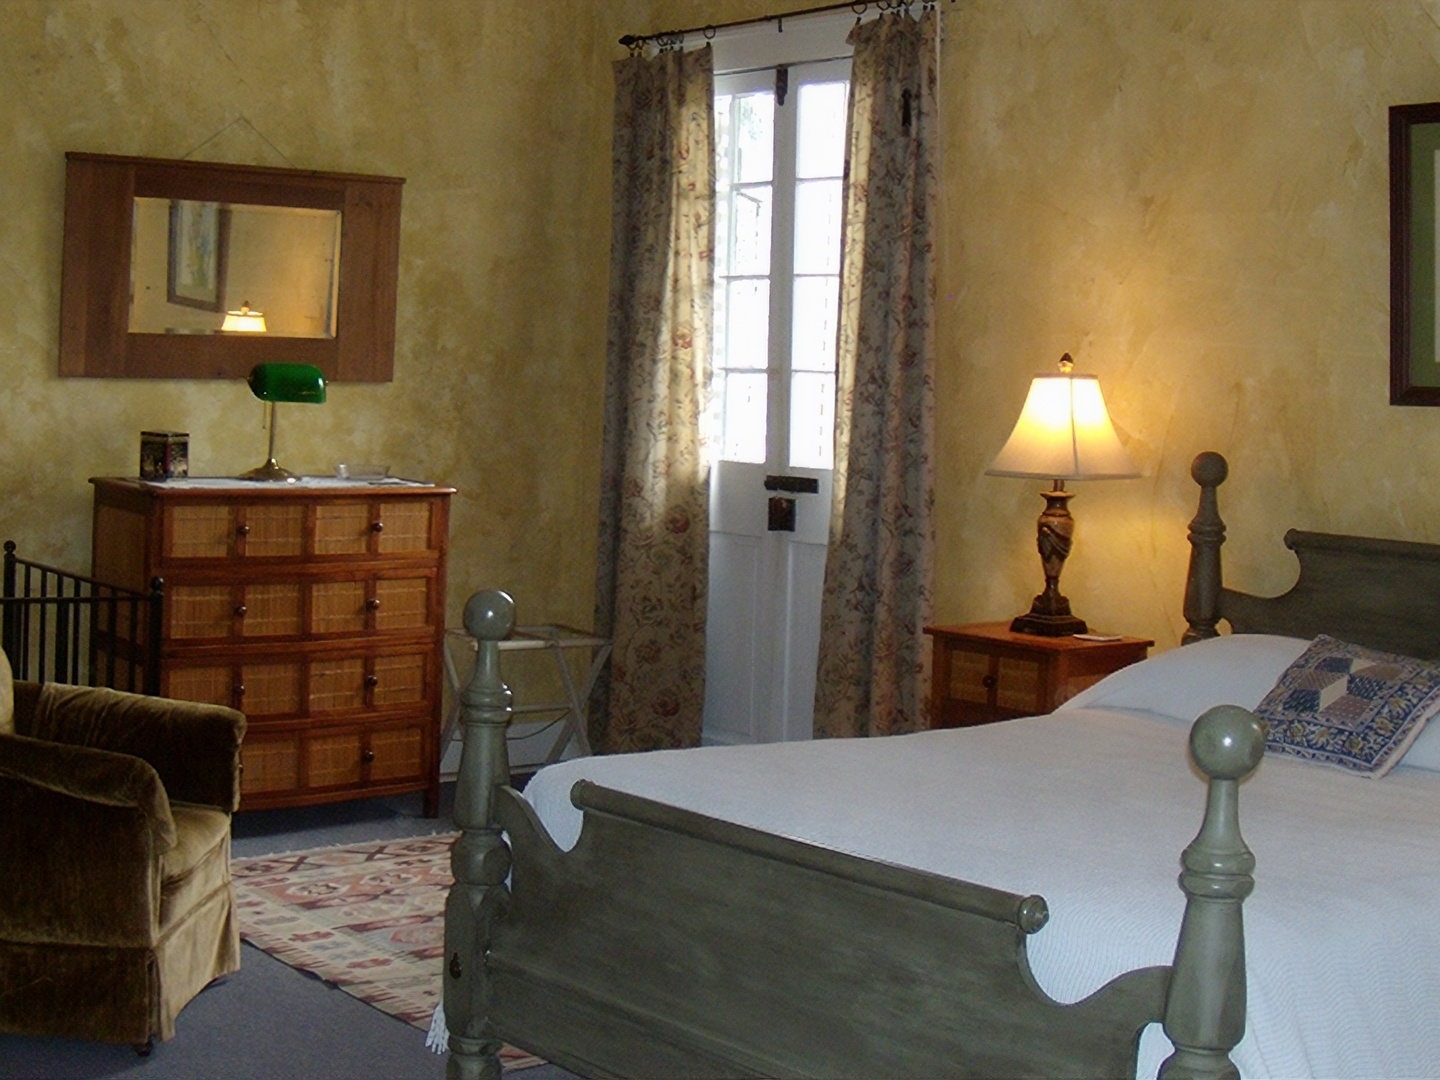 A bedroom with a bed and a mirror in a room at Pierre Coulon Guest House.